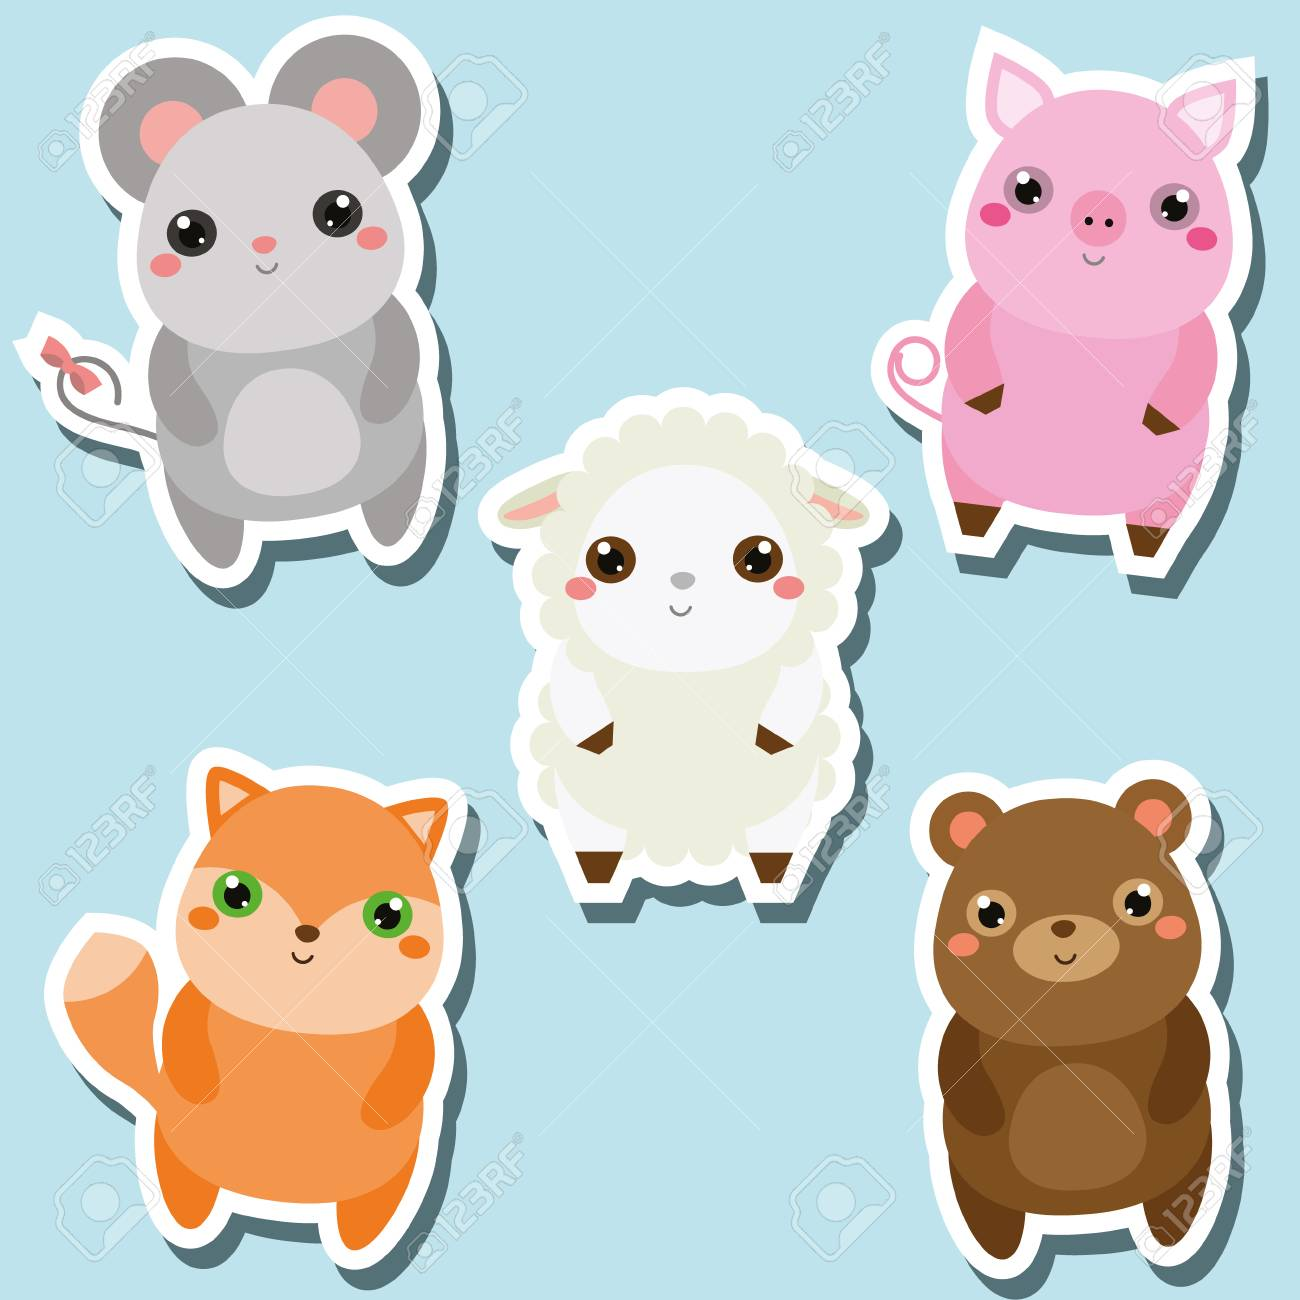 Image of: Png Cute Kawaii Animals Stickers Set Vector Illustration Mouse Pig Sheep Fox 123rfcom Cute Kawaii Animals Stickers Set Vector Illustration Mouse